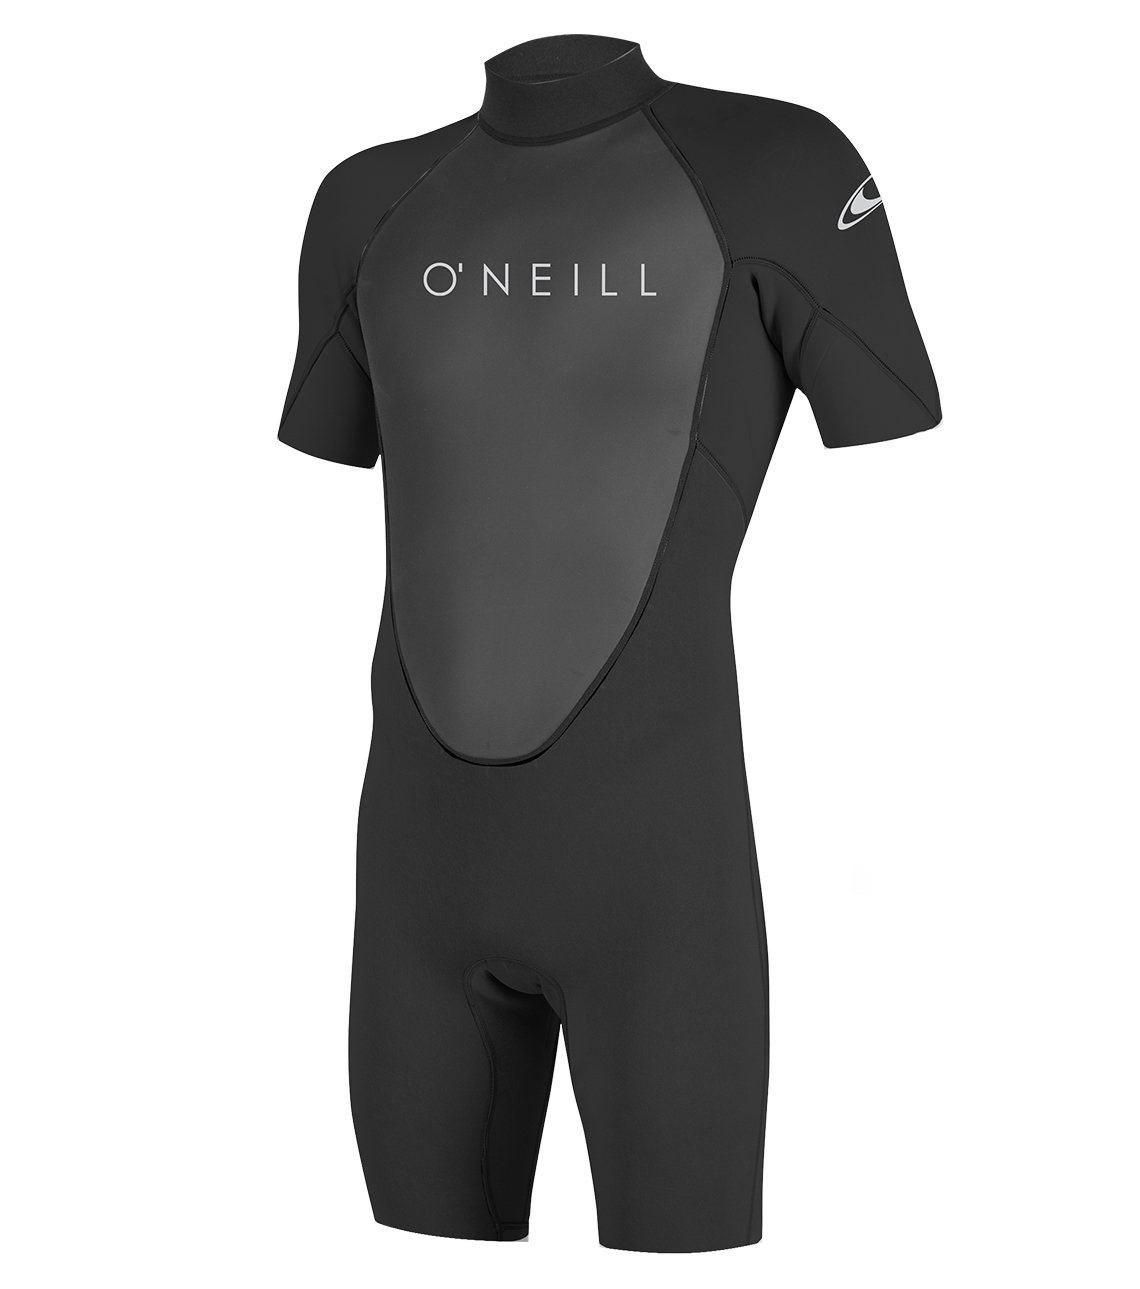 O'Neill Men's Reactor-2 2mm Back Zip Short Sleeve Spring Wetsuit, Black, X-Small